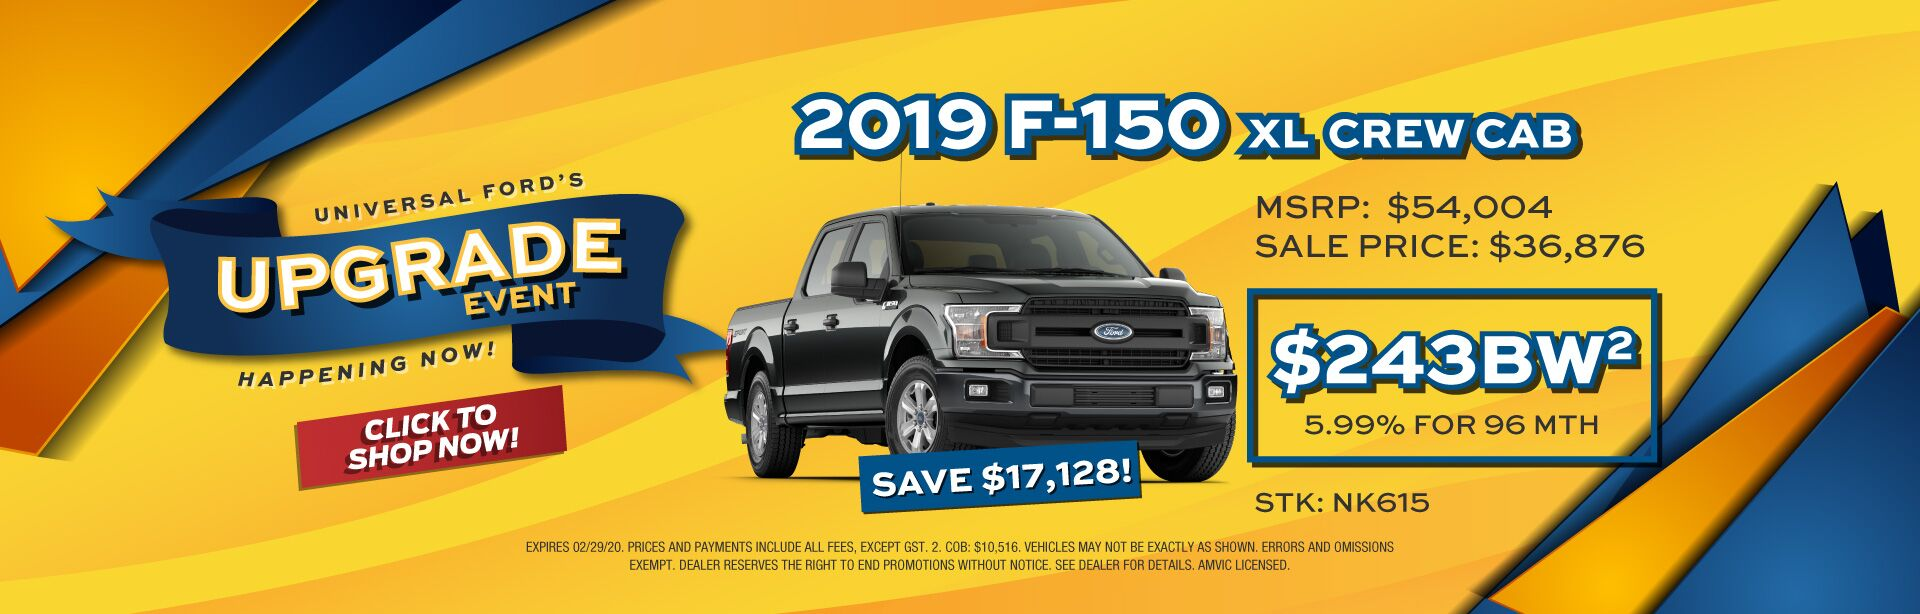 Upgrade Event - F150